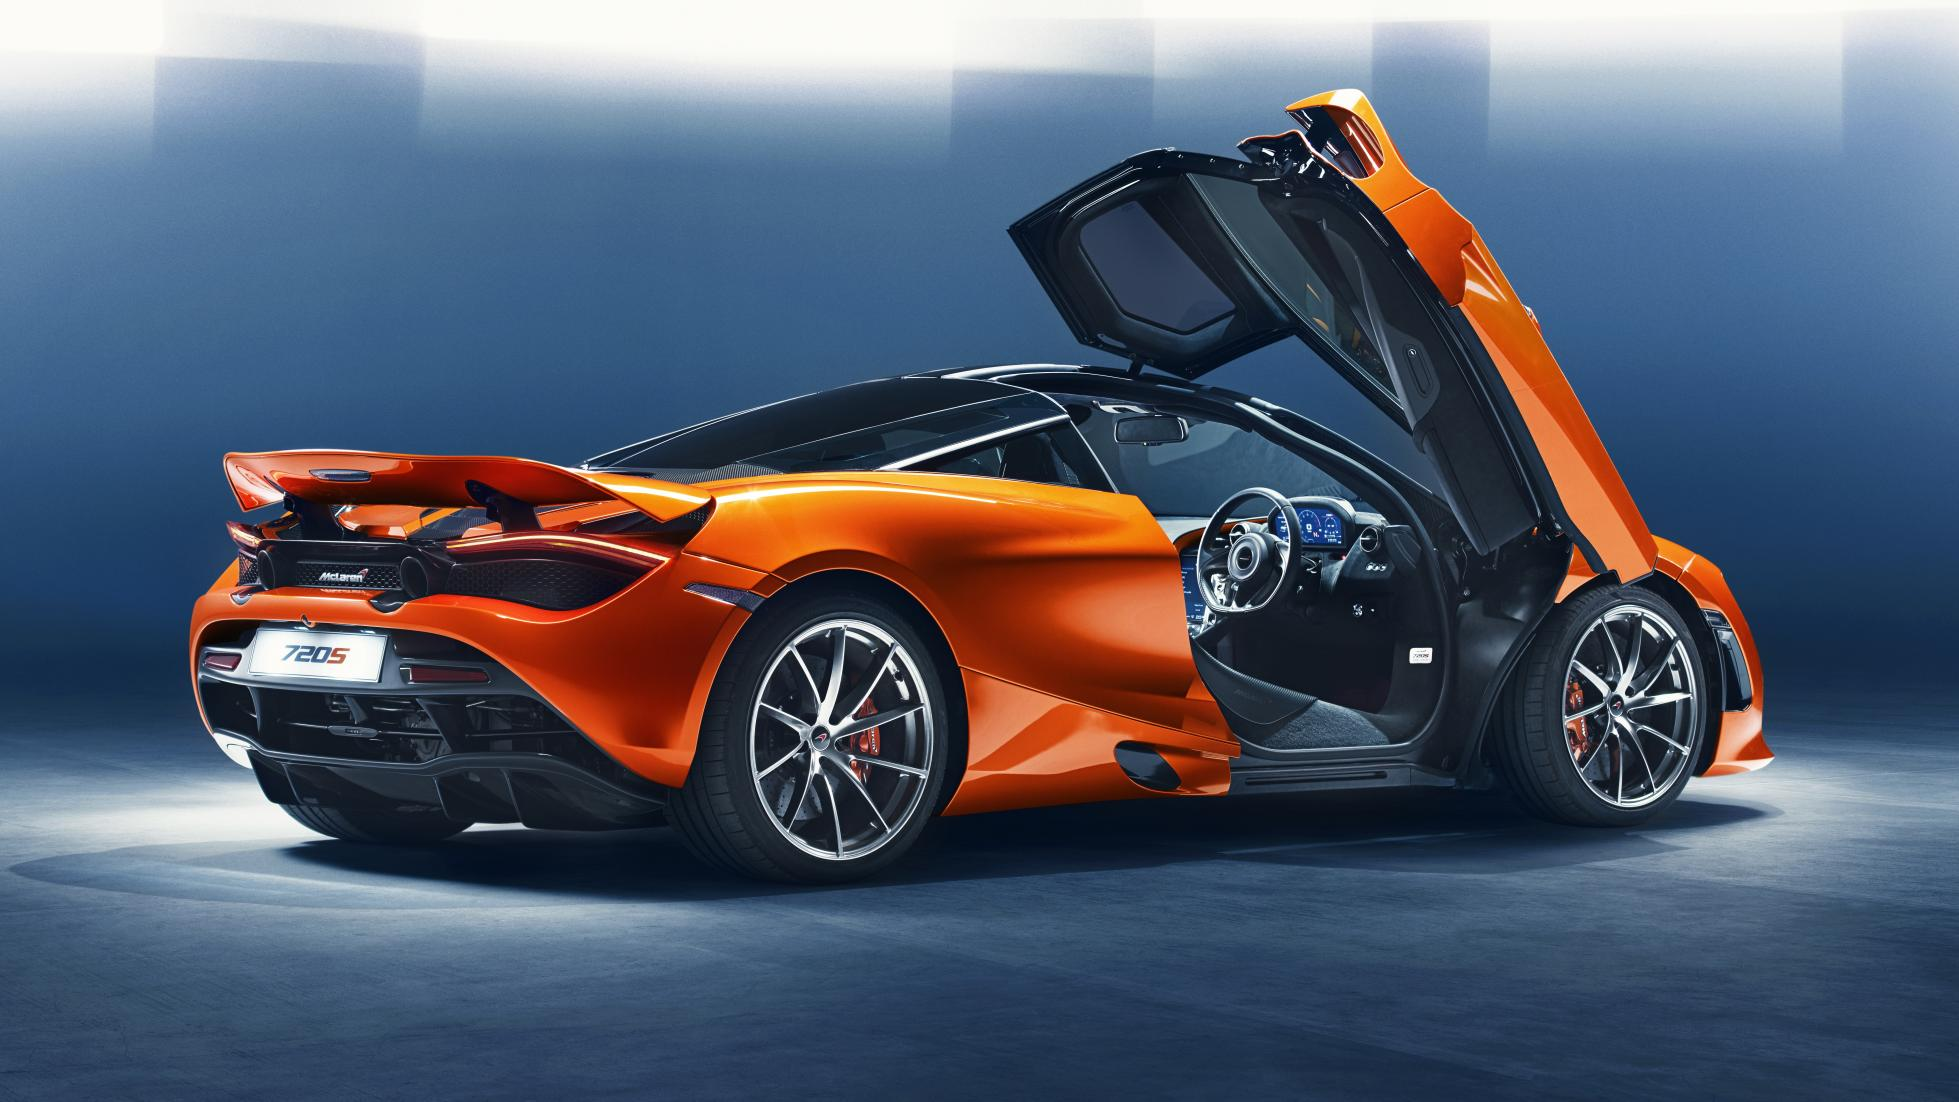 Mclaren 720s The New Beast In Town Exotic Car List